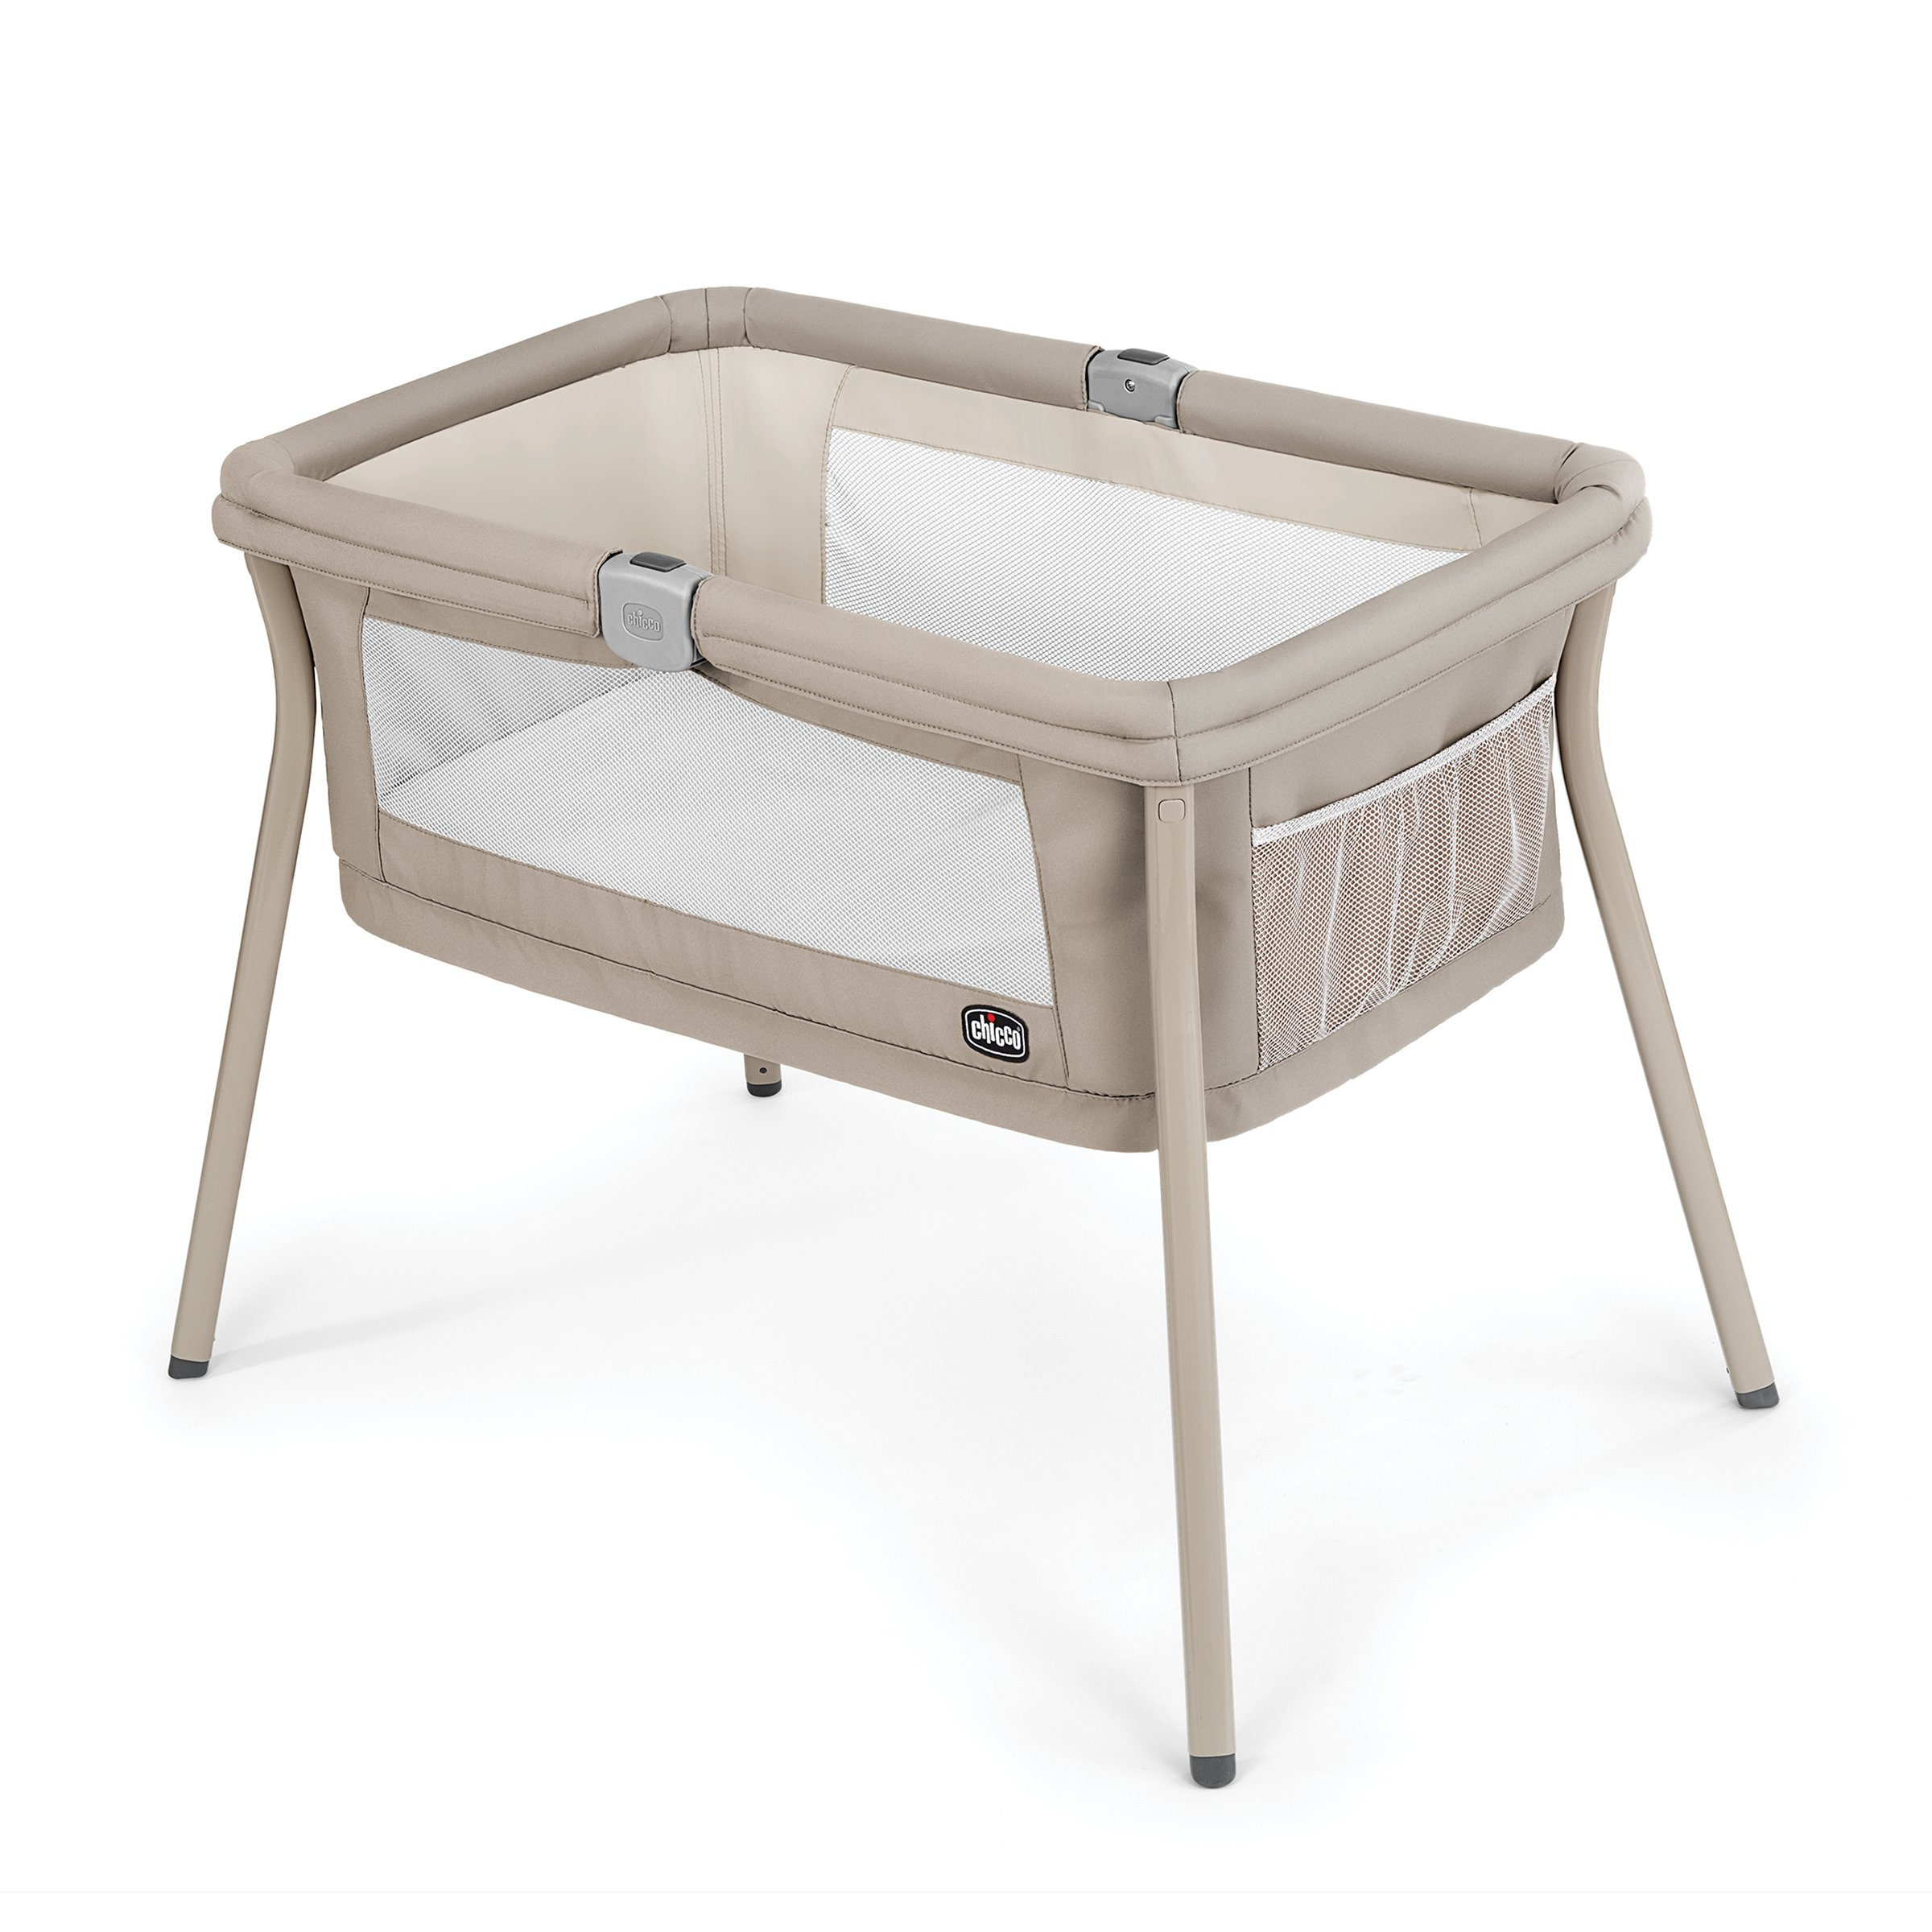 Chicco LullaGo Portable Bassinet, Sand by Chicco